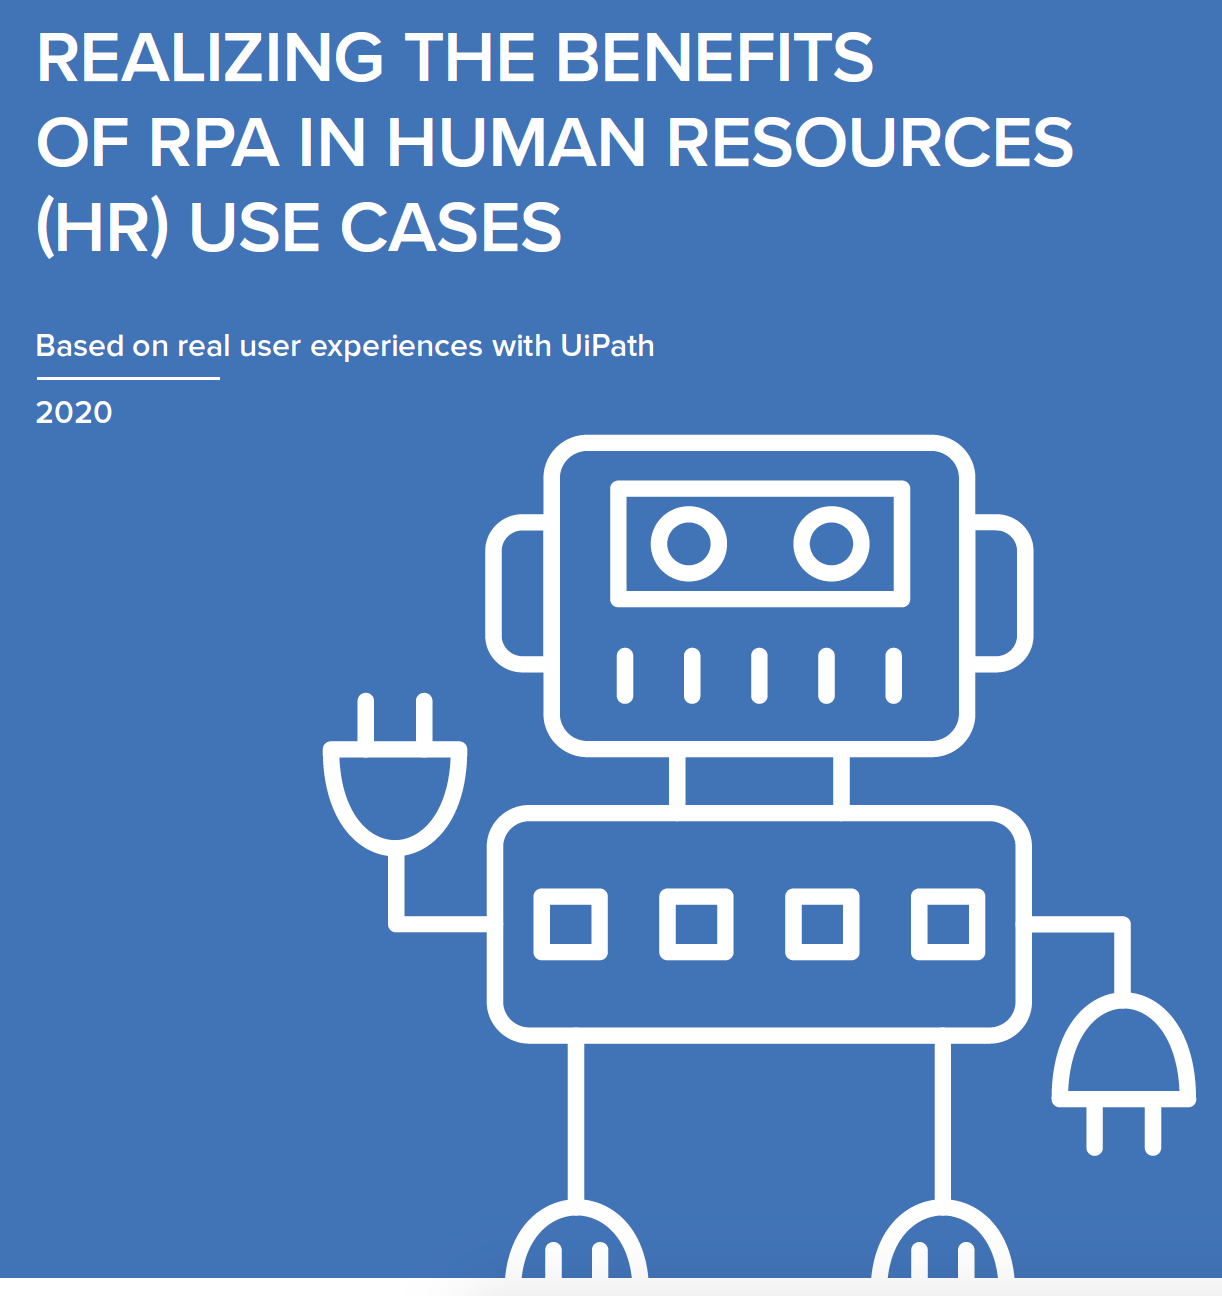 Benefits of RPA in HR Use Cases based on Real User Experiences with UiPath